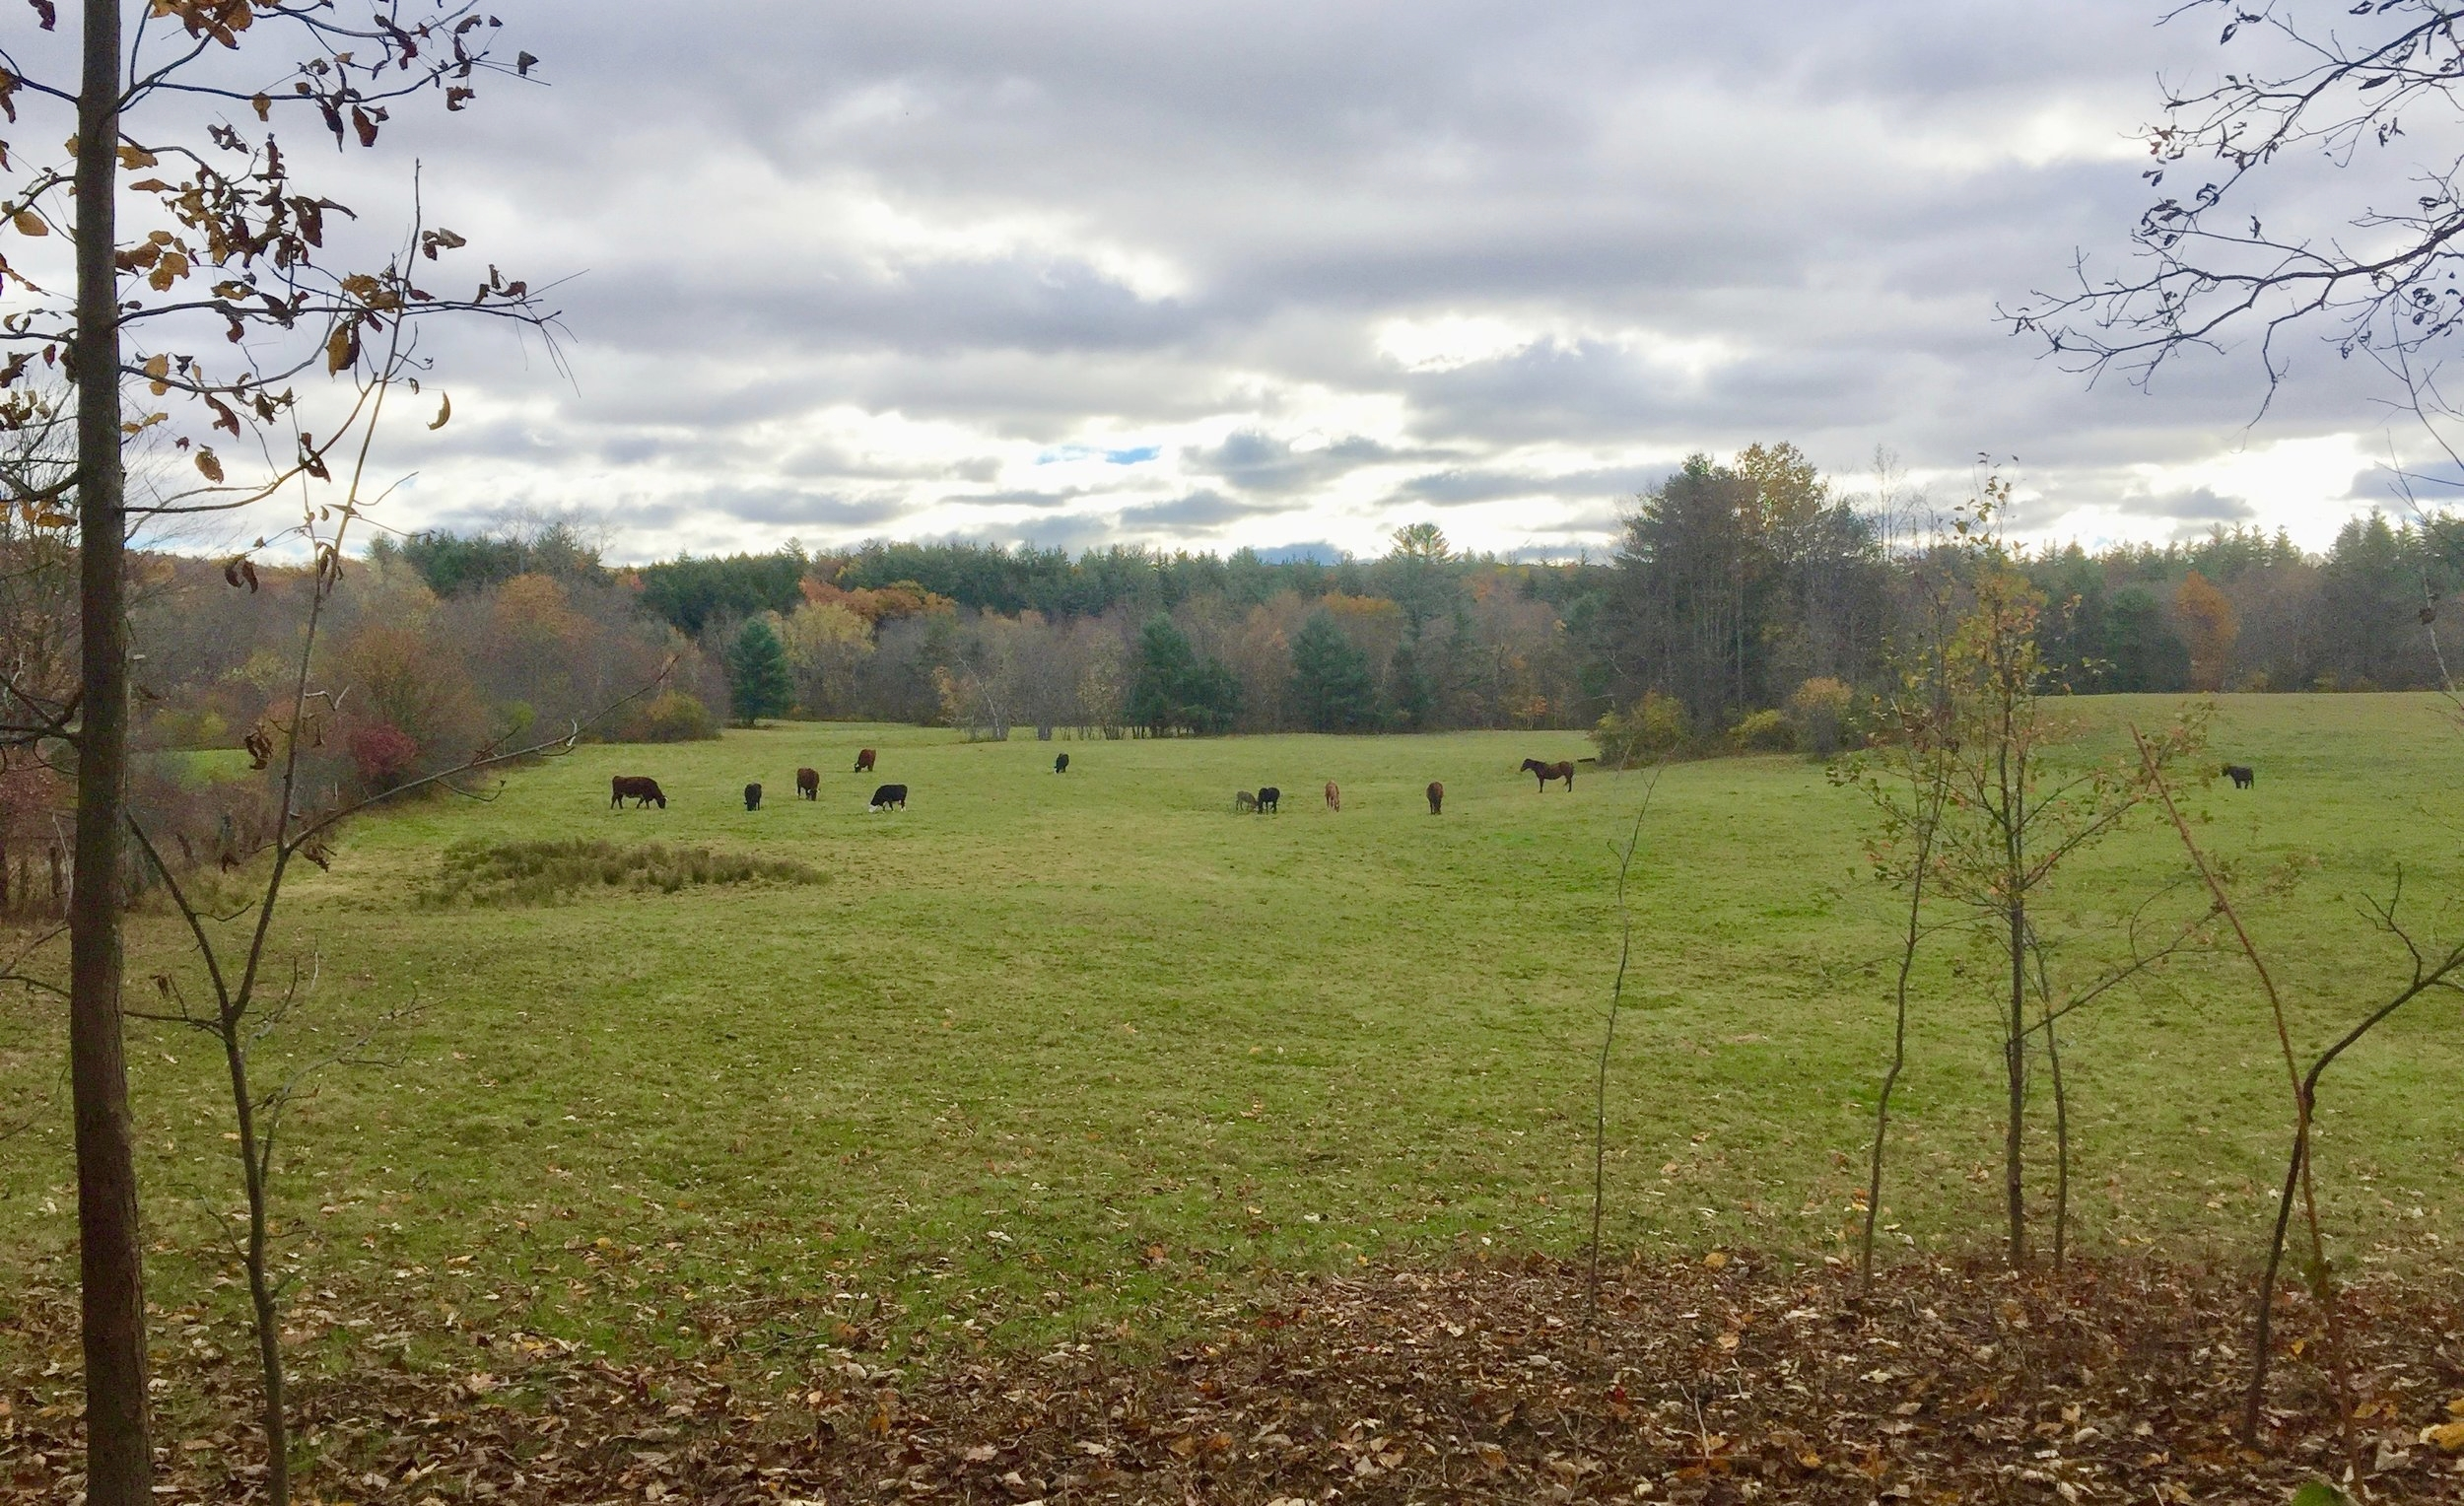 Late summer occupants on the Belding pasture, as seen from Route 32